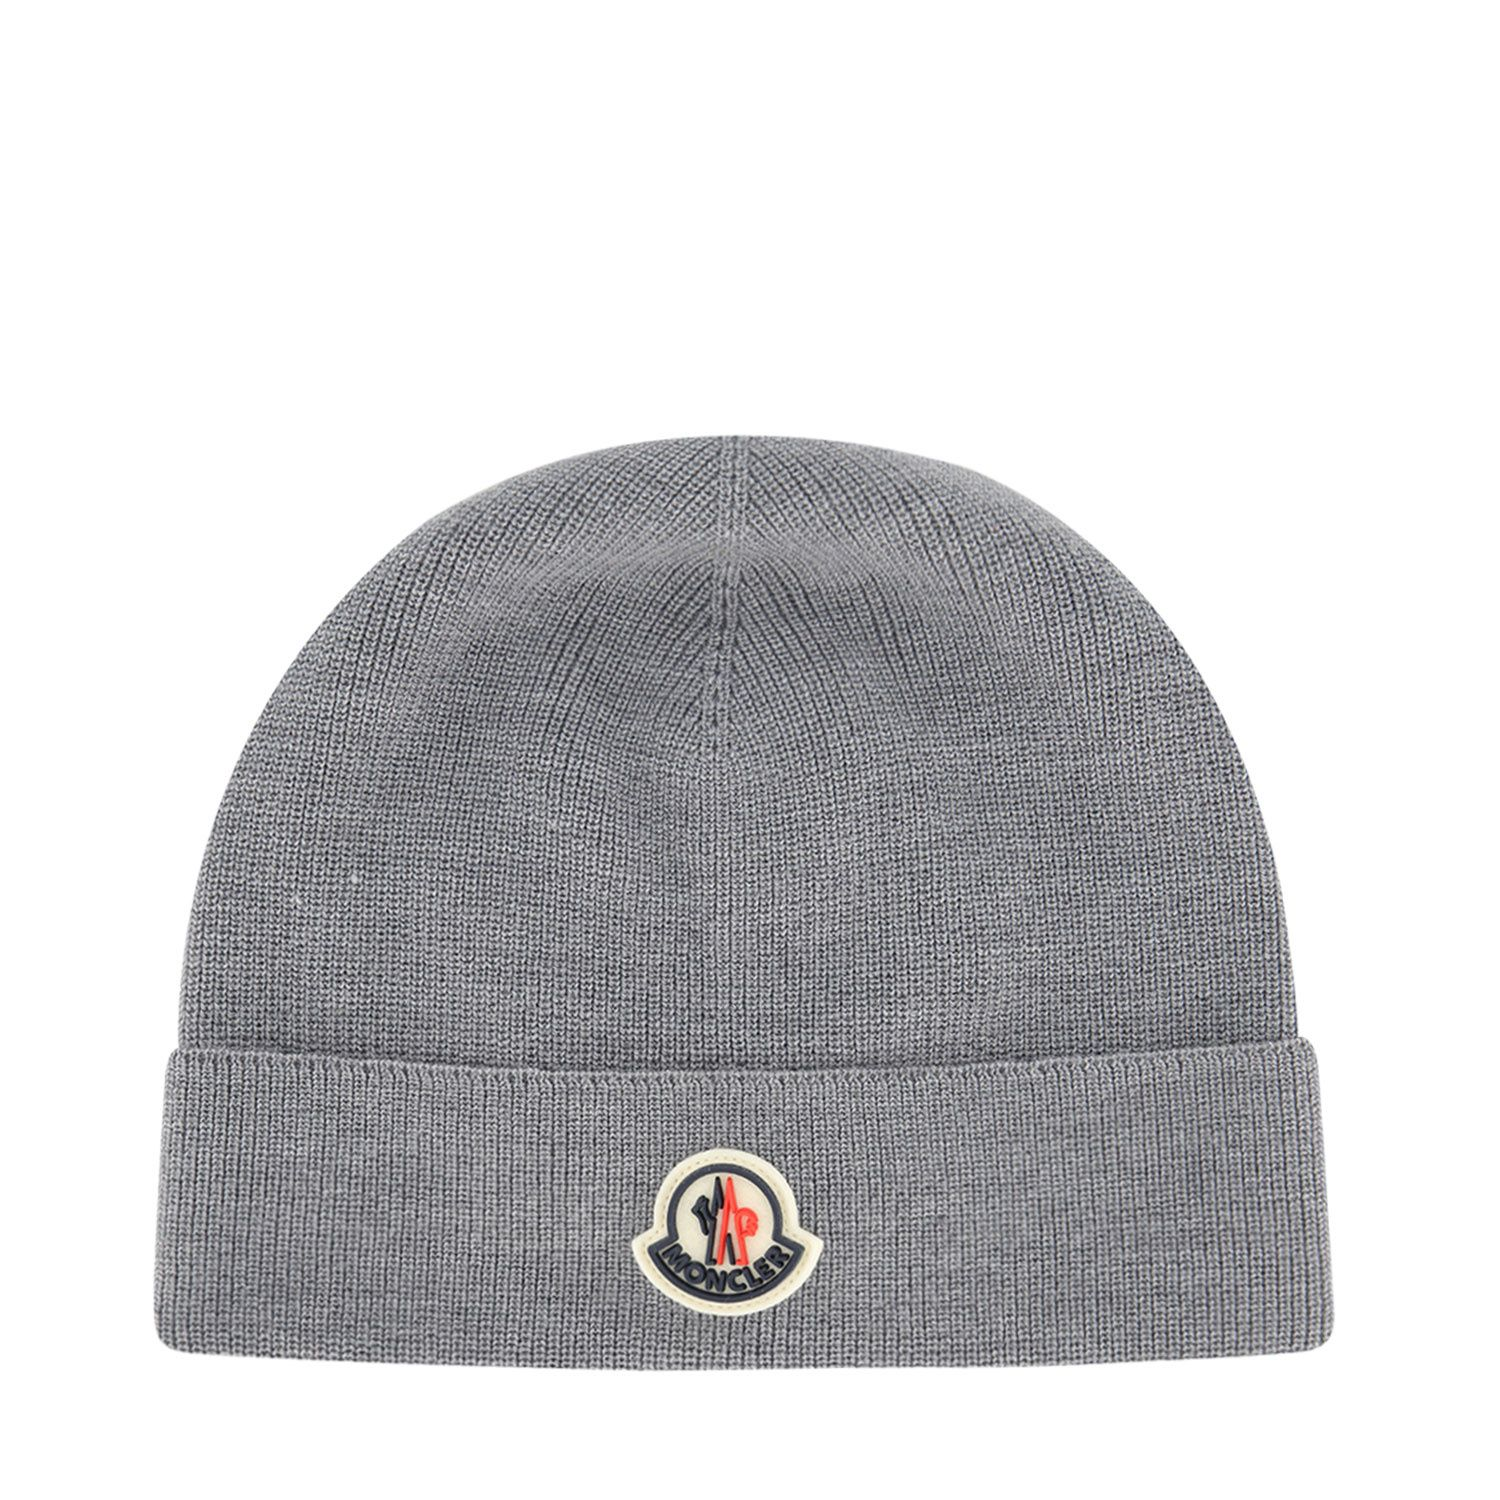 Picture of Moncler 9Z73100 kids hat grey